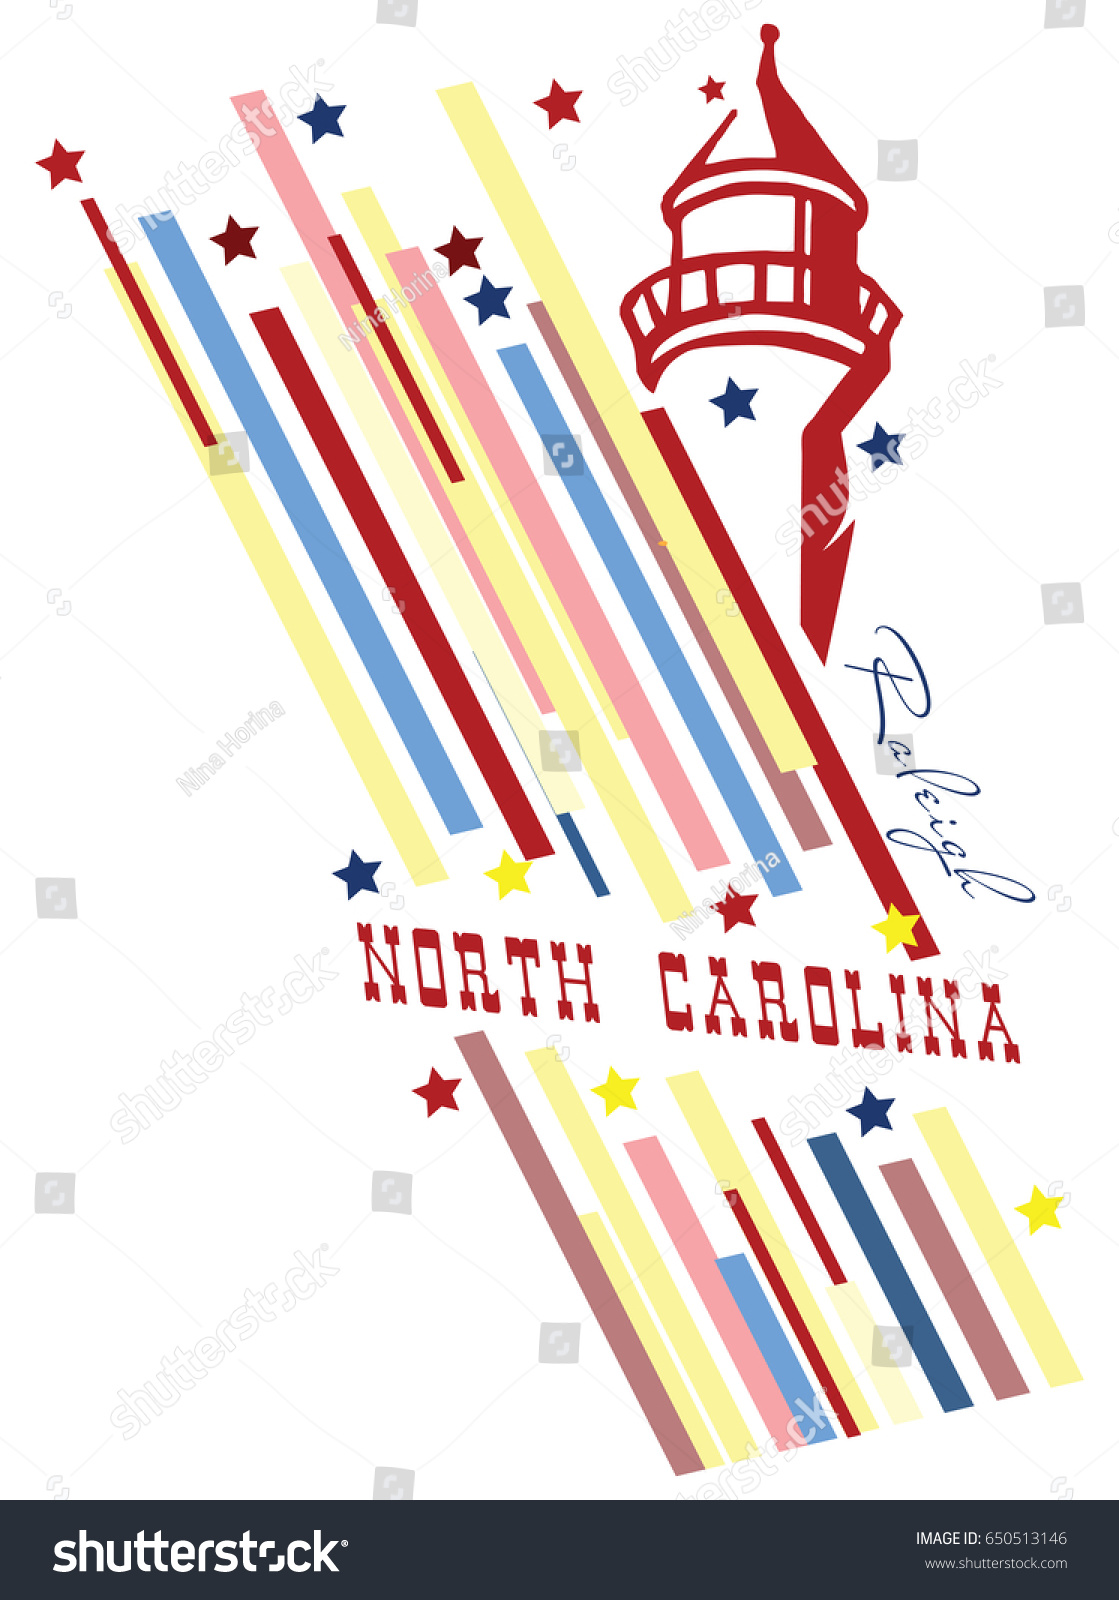 Creative banner symbol state north carolina stock vector 650513146 creative banner with the symbol of the state of north carolina buycottarizona